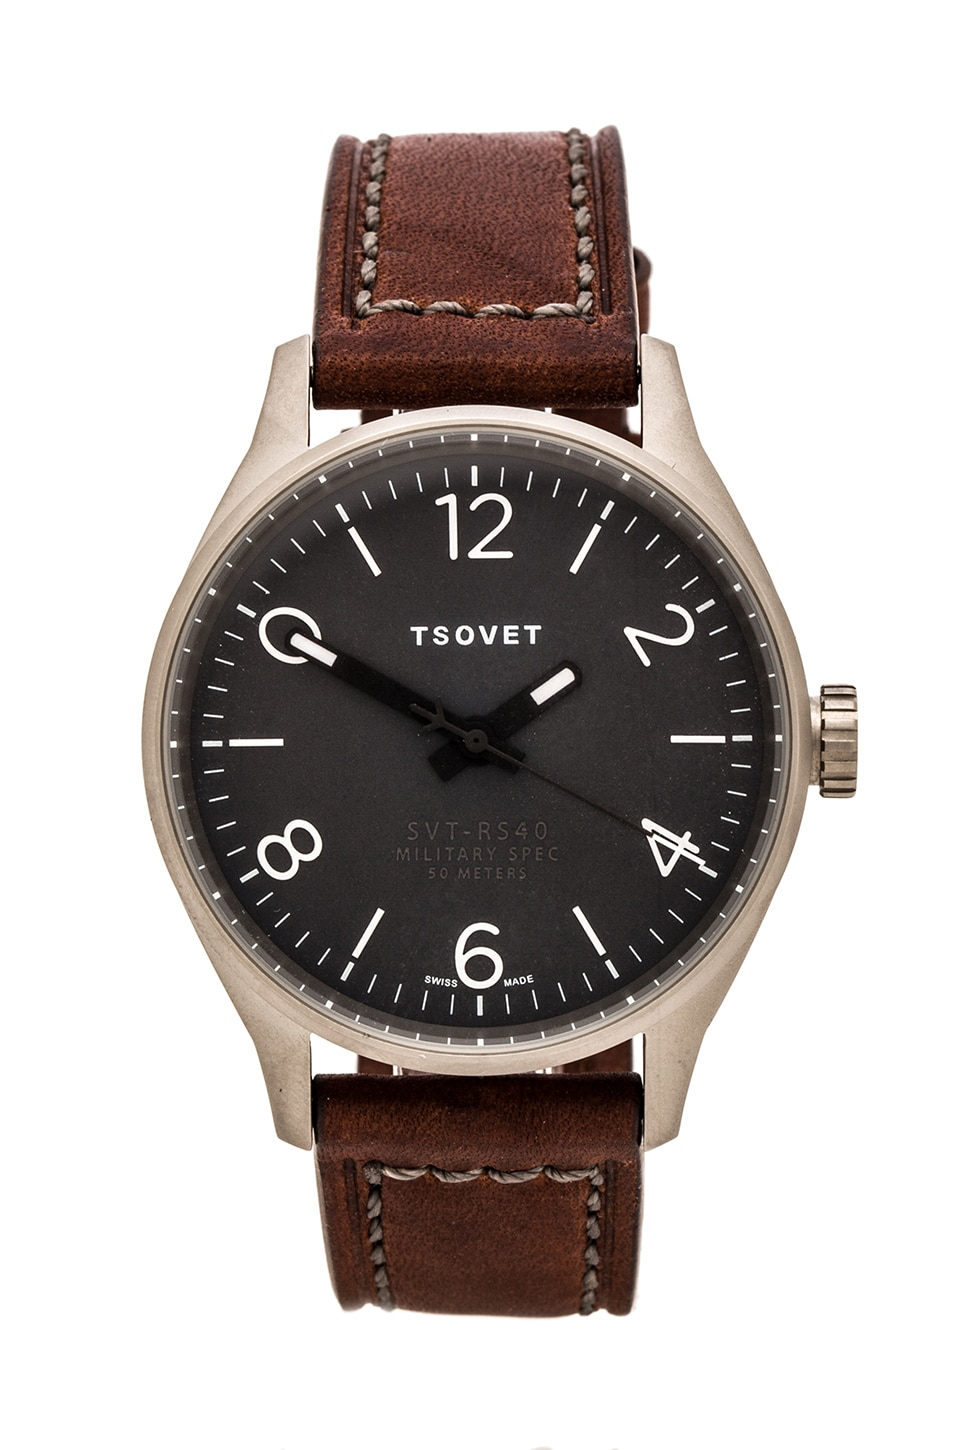 Tsovet SVT-RS40 in Grey w/Dark Brown Leather Straps